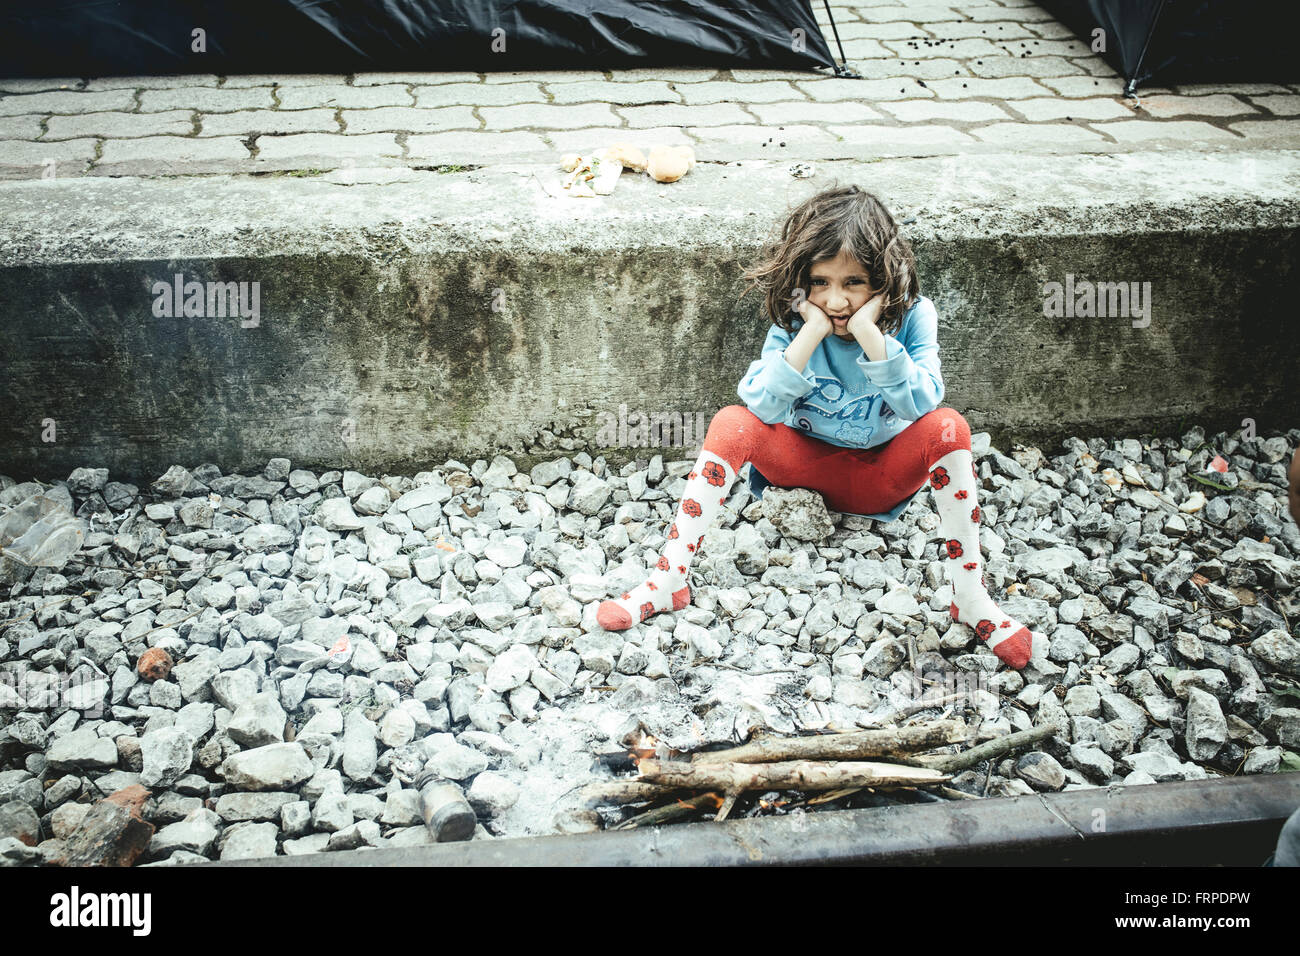 Idomeni refugee camp on Greek Macedonia border, a child sits on the platform at the station, Idomeni, Central Macedonia, - Stock Image